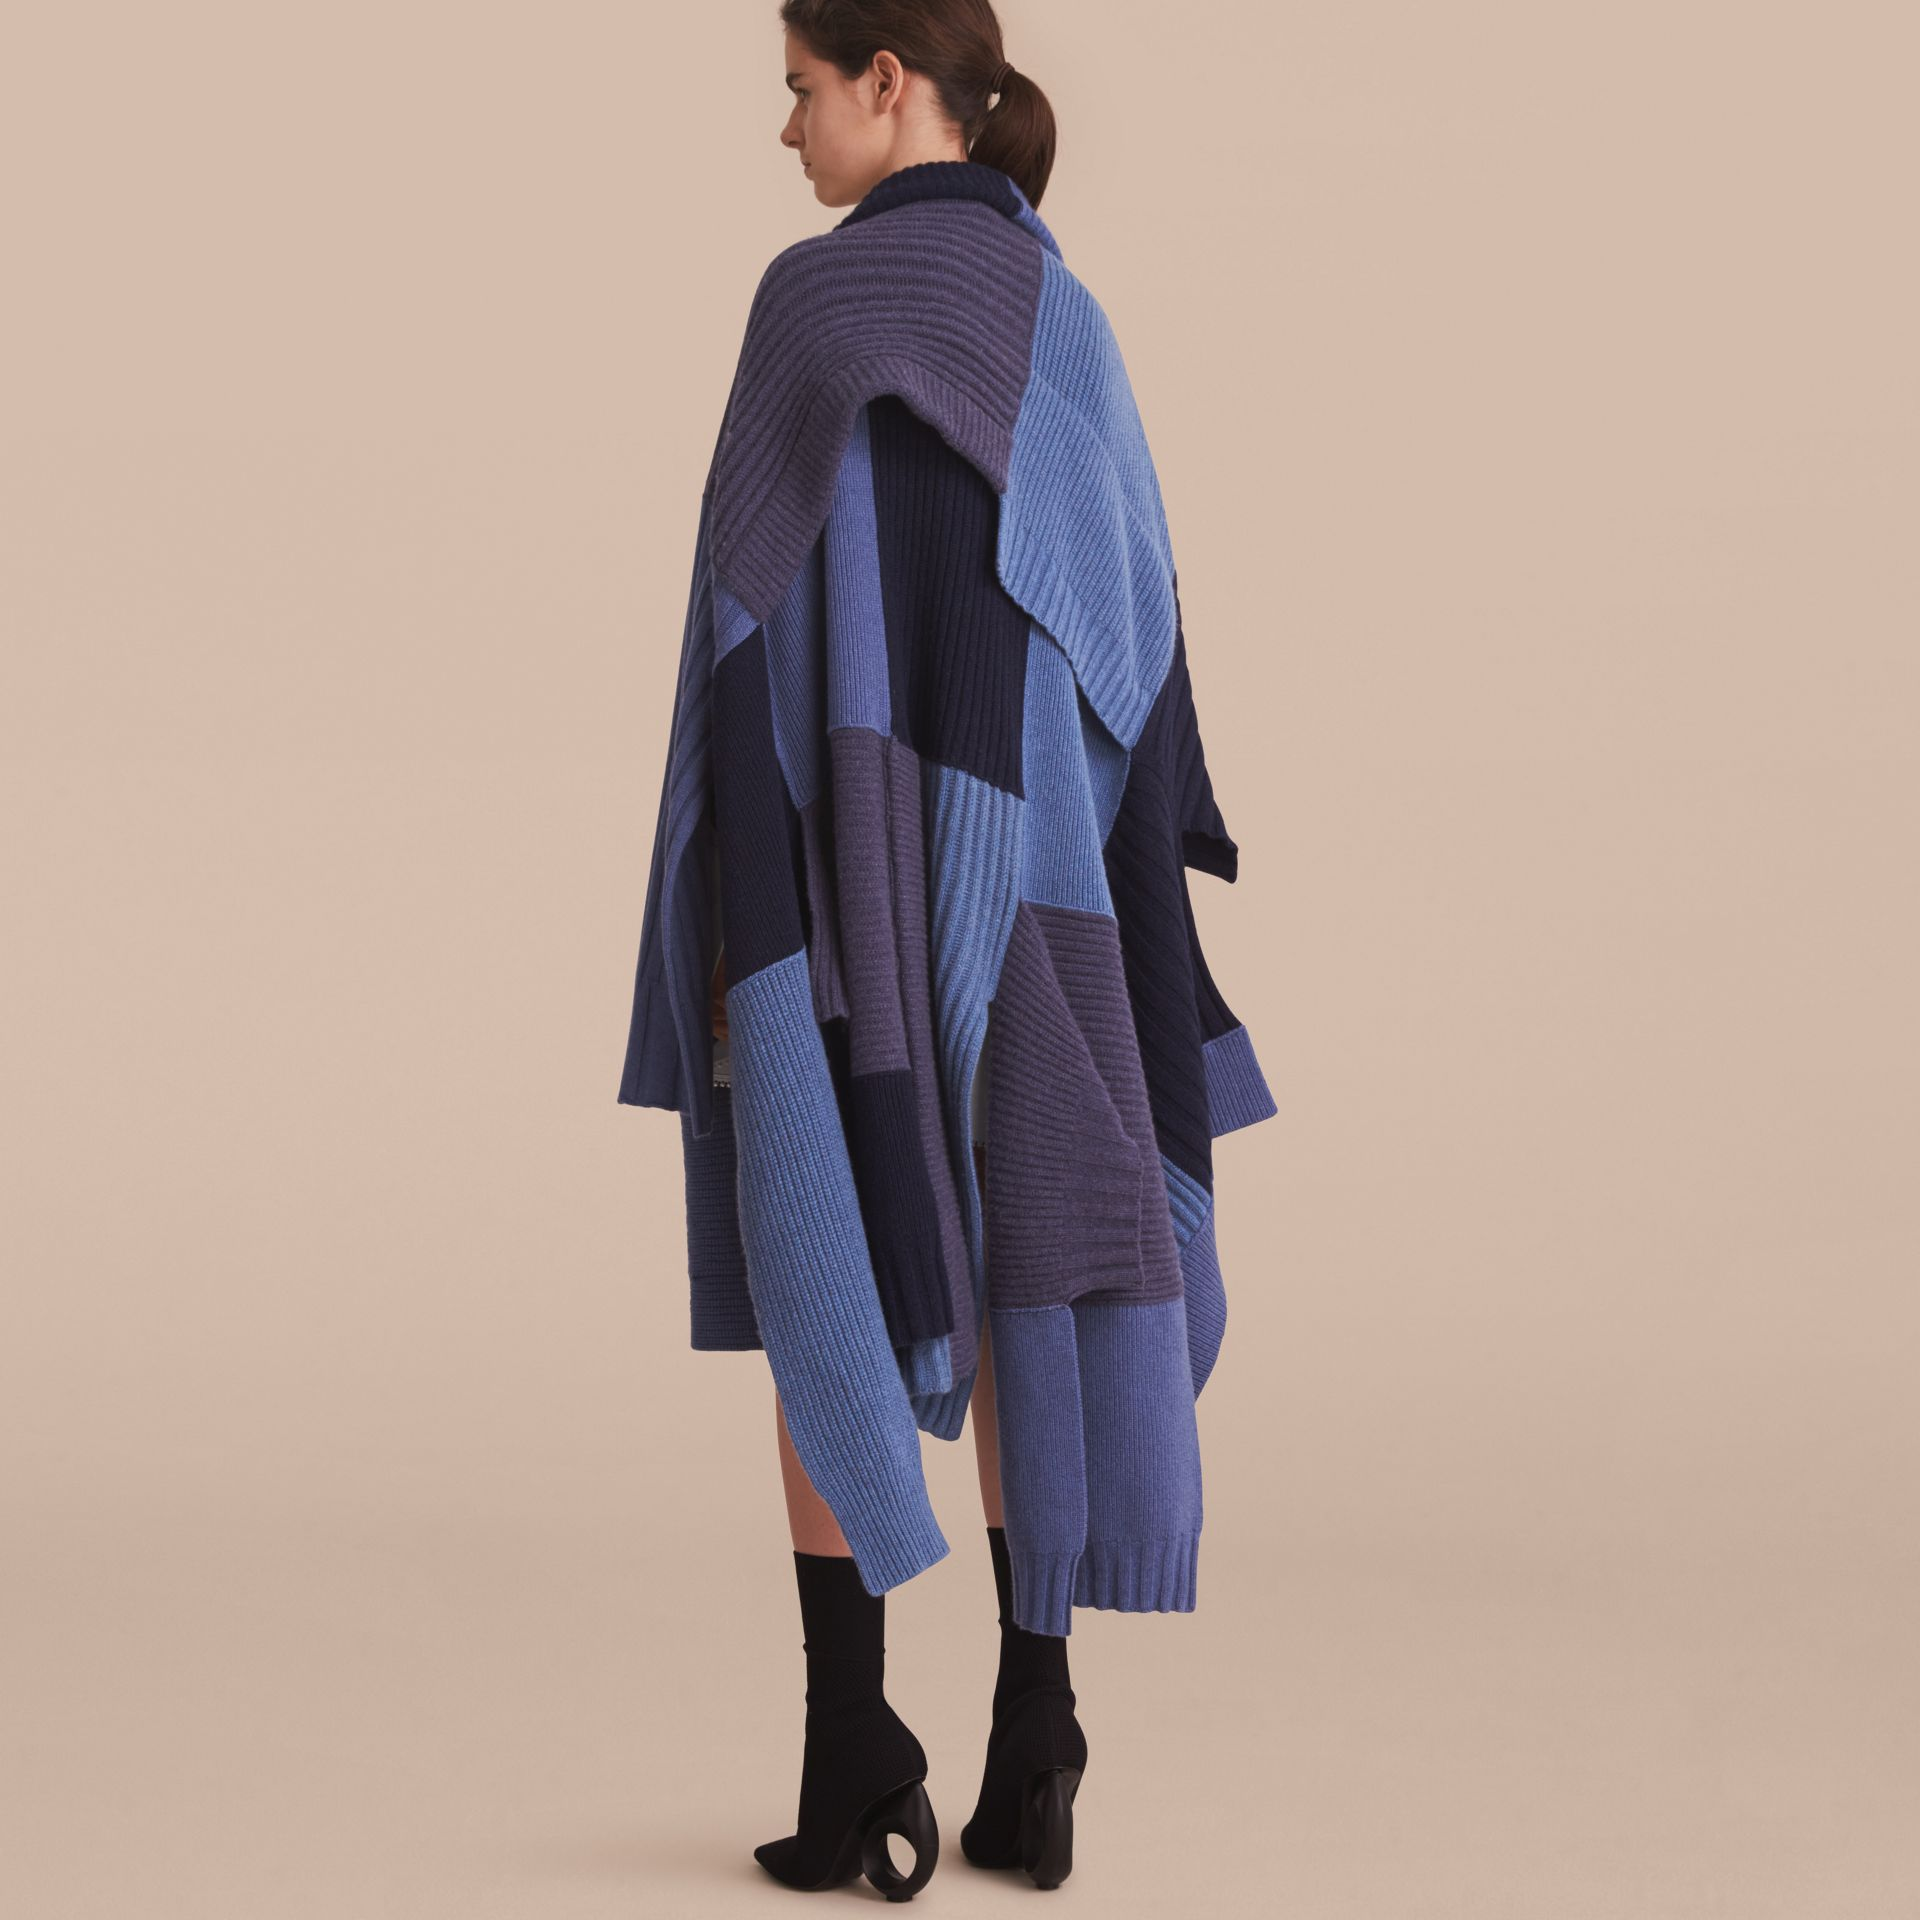 Wool Cashmere Patchwork Poncho in Carbon Blue - Women | Burberry United Kingdom - gallery image 3